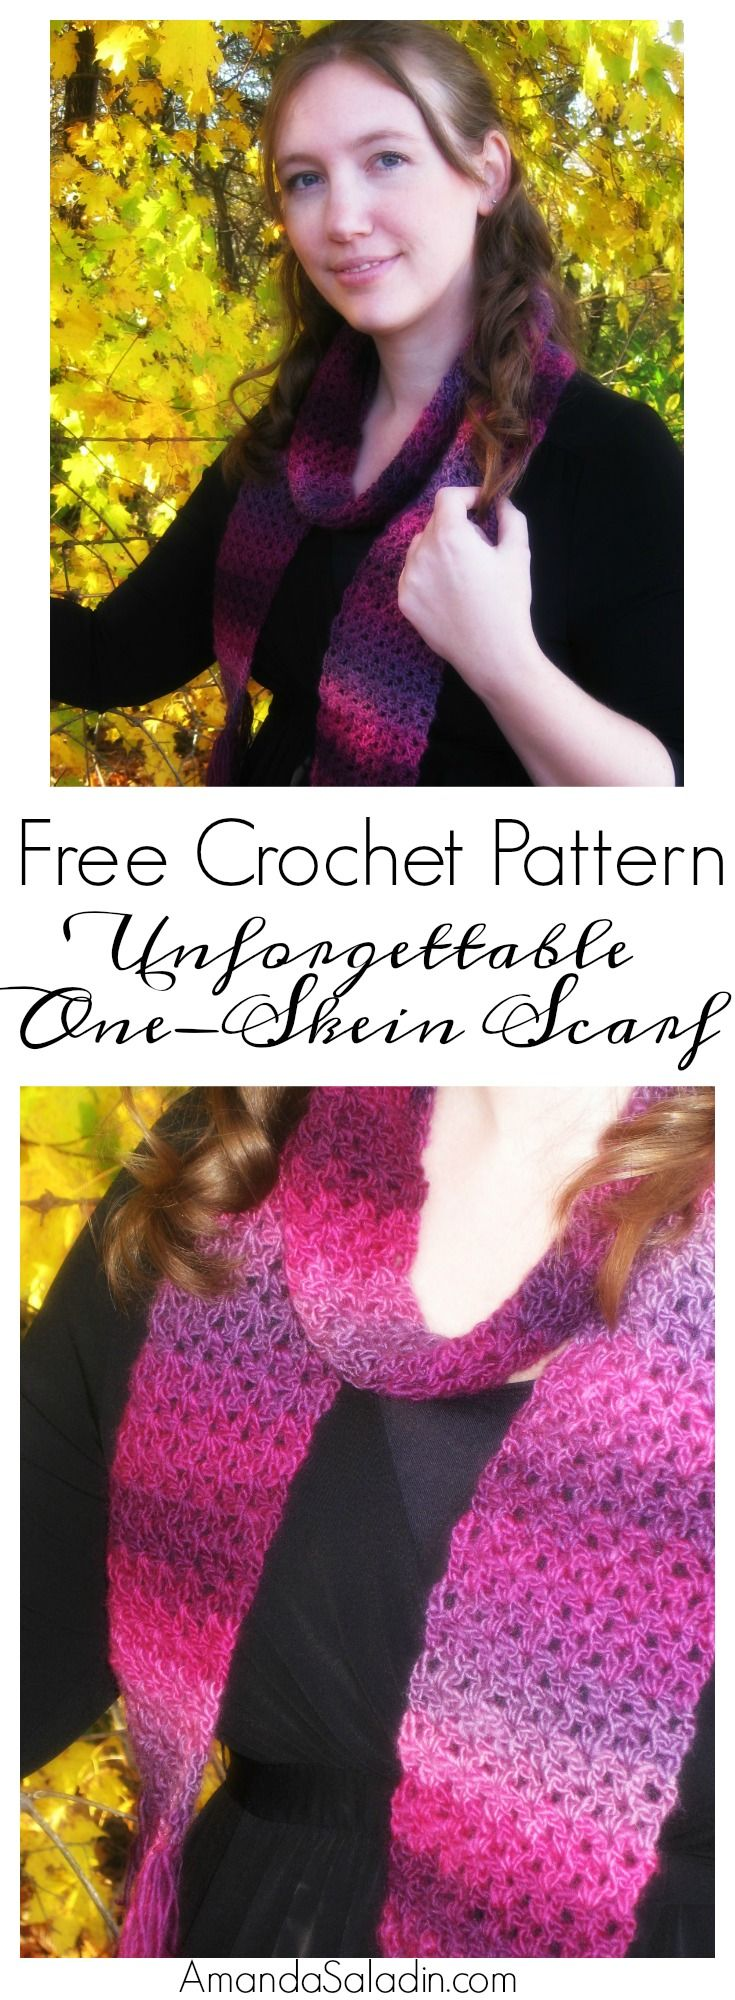 Over 100 projects on Ravelry for this FREE crochet pattern! I have to make this!  Video tutorial, too!